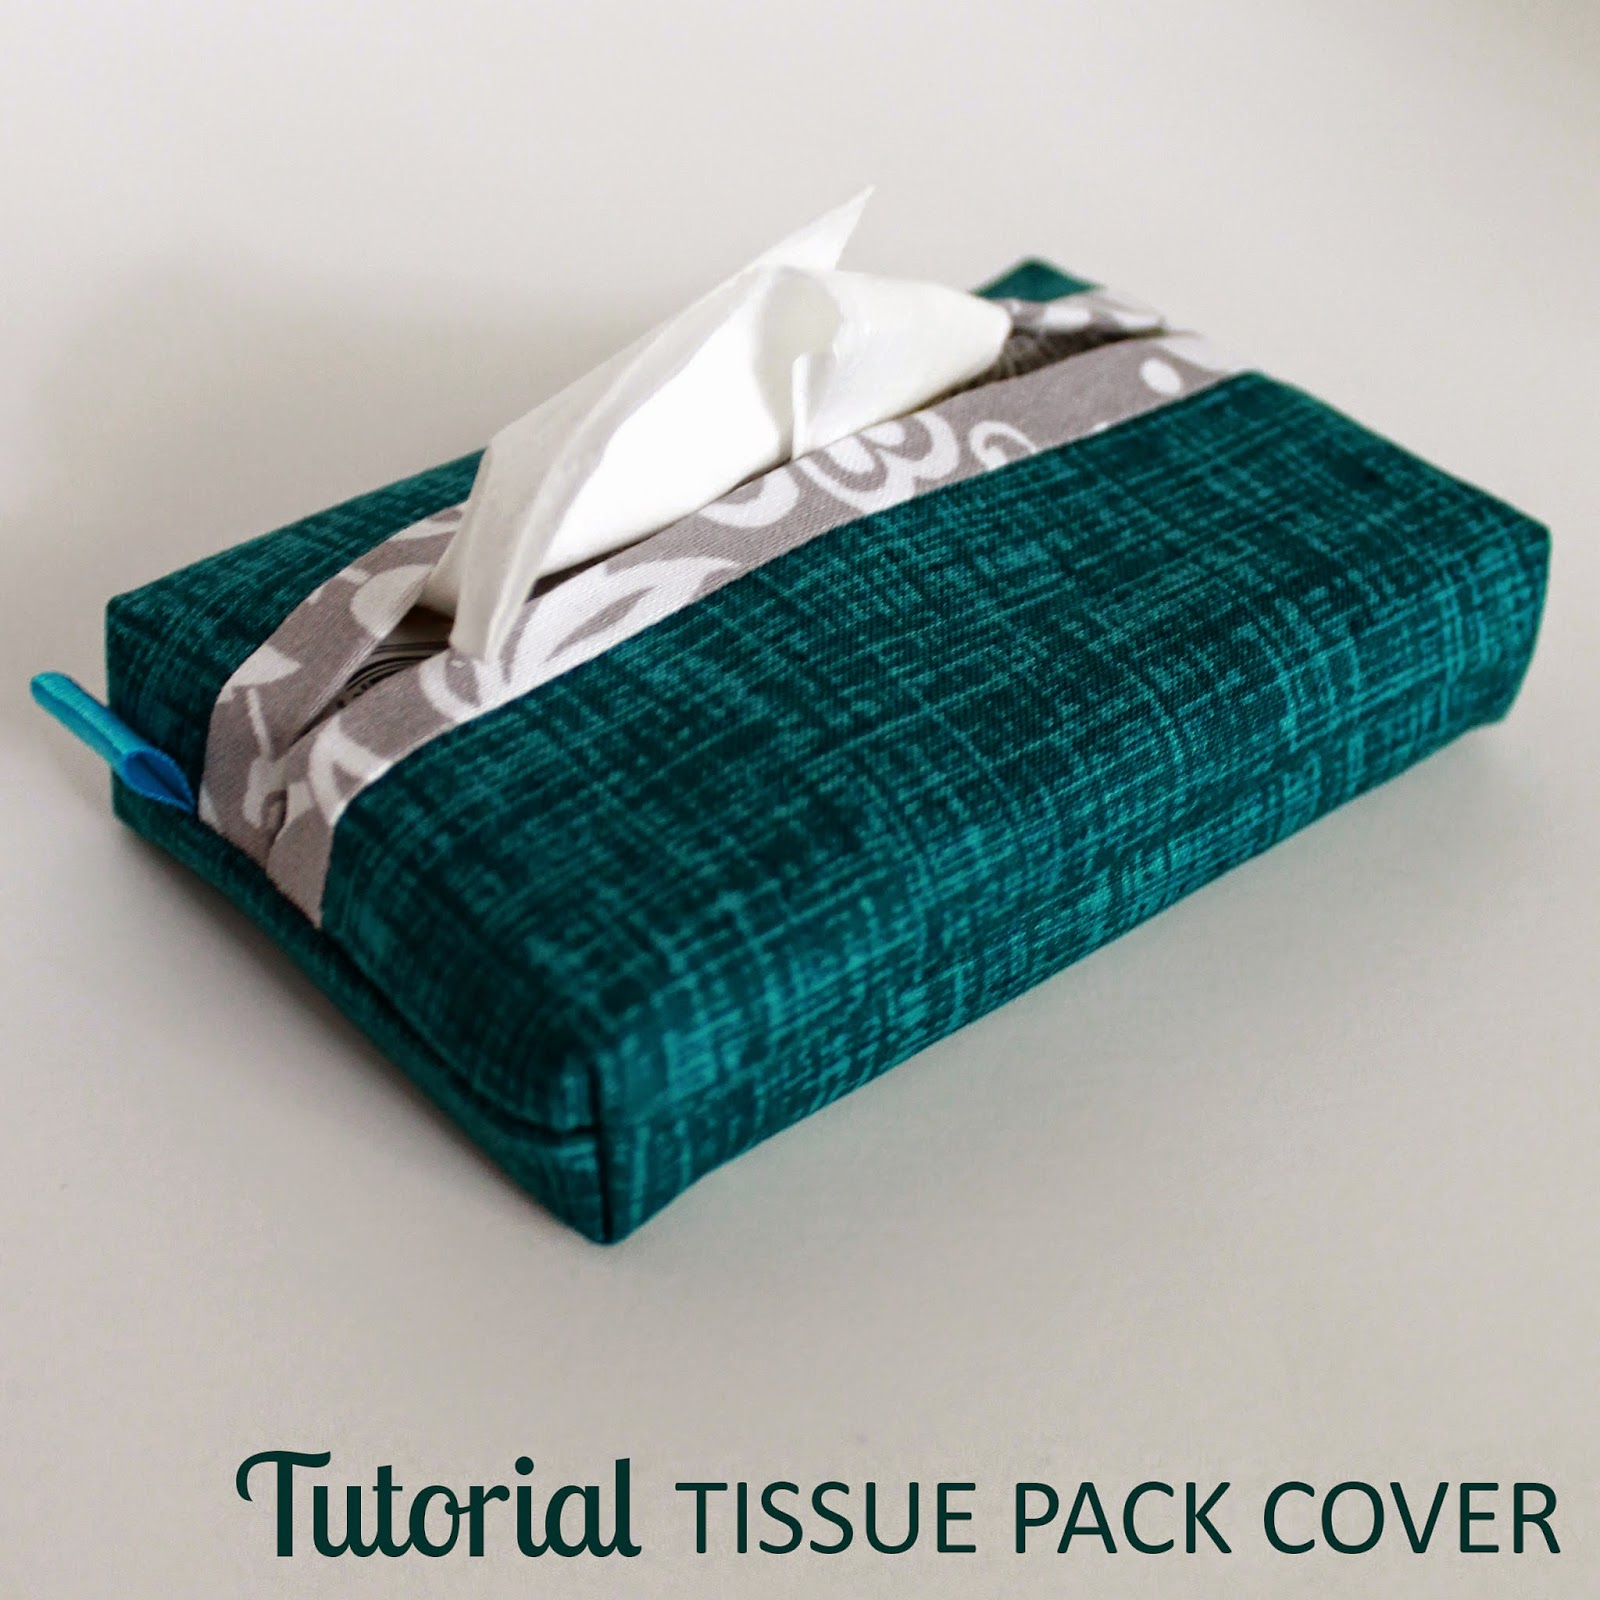 Tissue Pack Cover Tutorial | The Inspired Wren